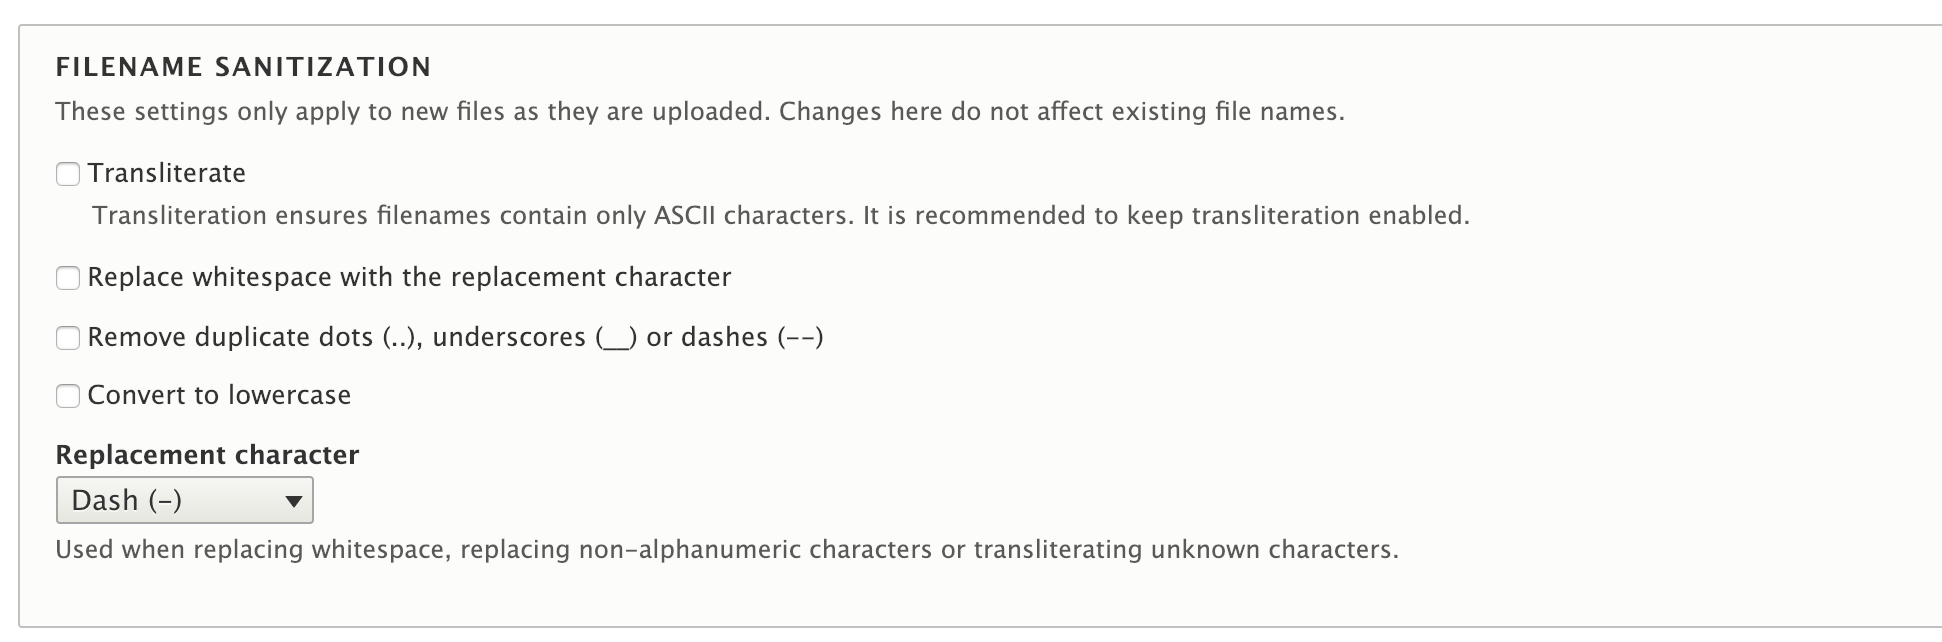 PP-1] Provide options to sanitize filenames (transliterate